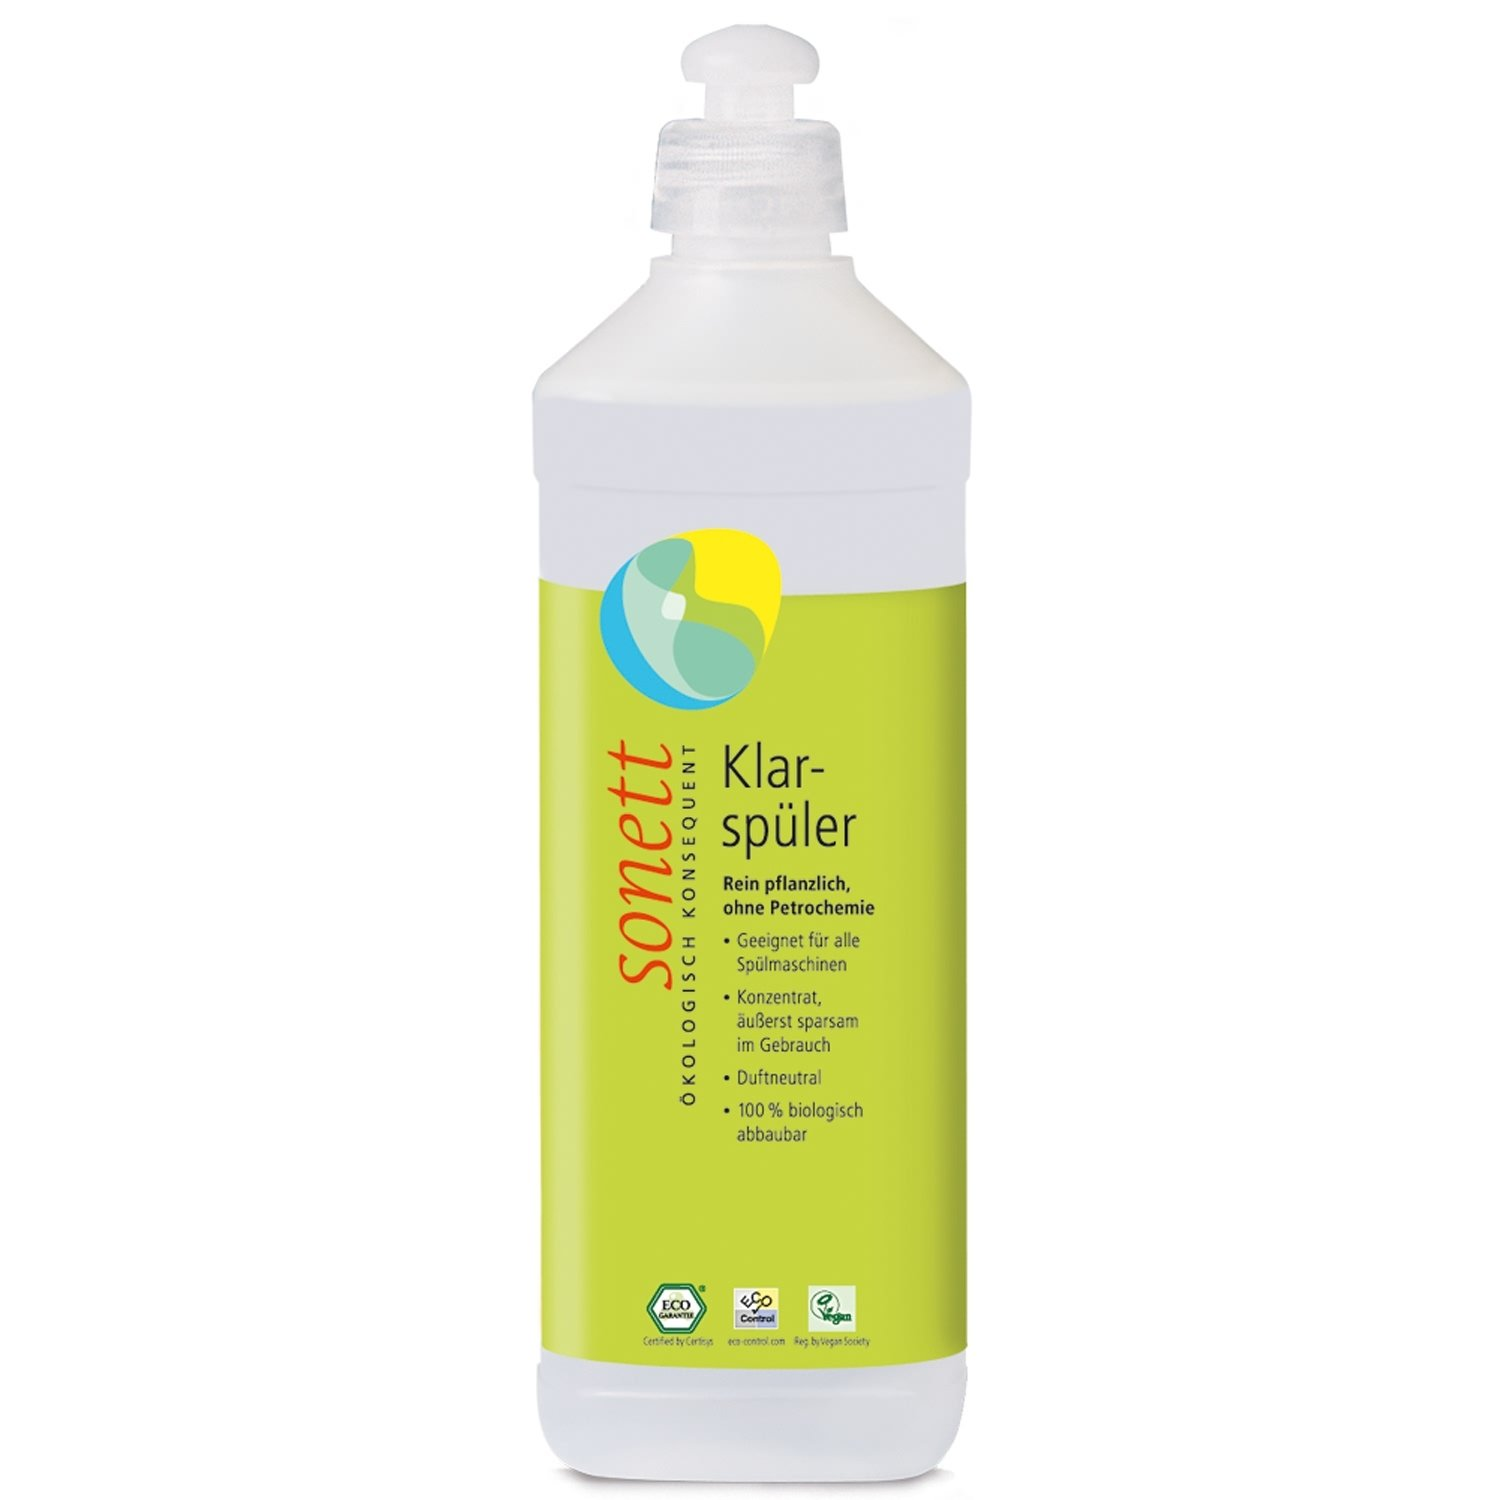 Soneto transparente para retrete de pared 500 ml: Amazon.es: Salud y cuidado personal